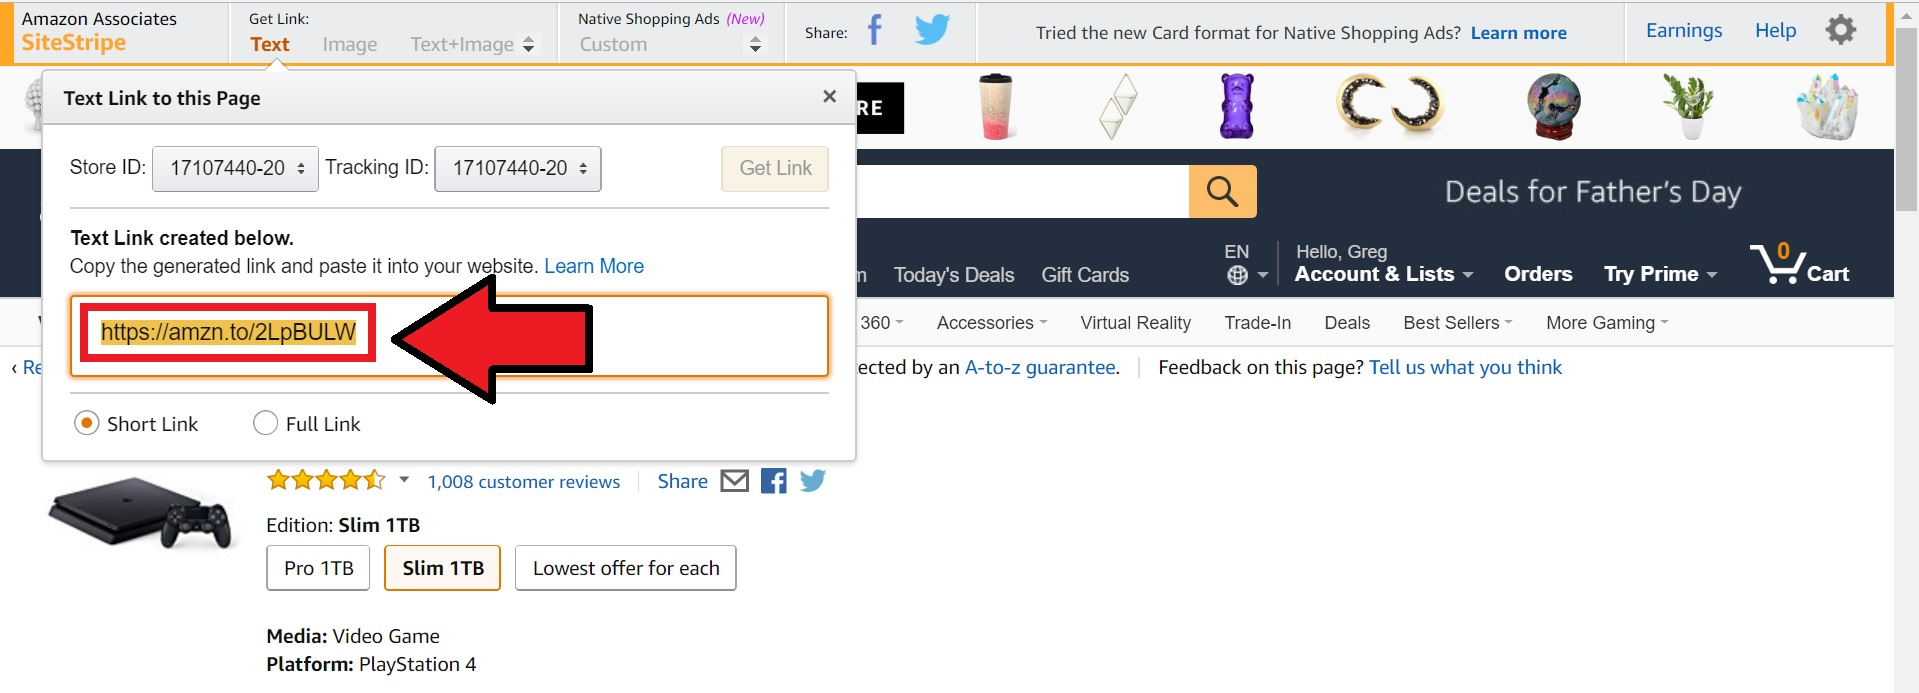 amazon site screenshot affiliate marketing area